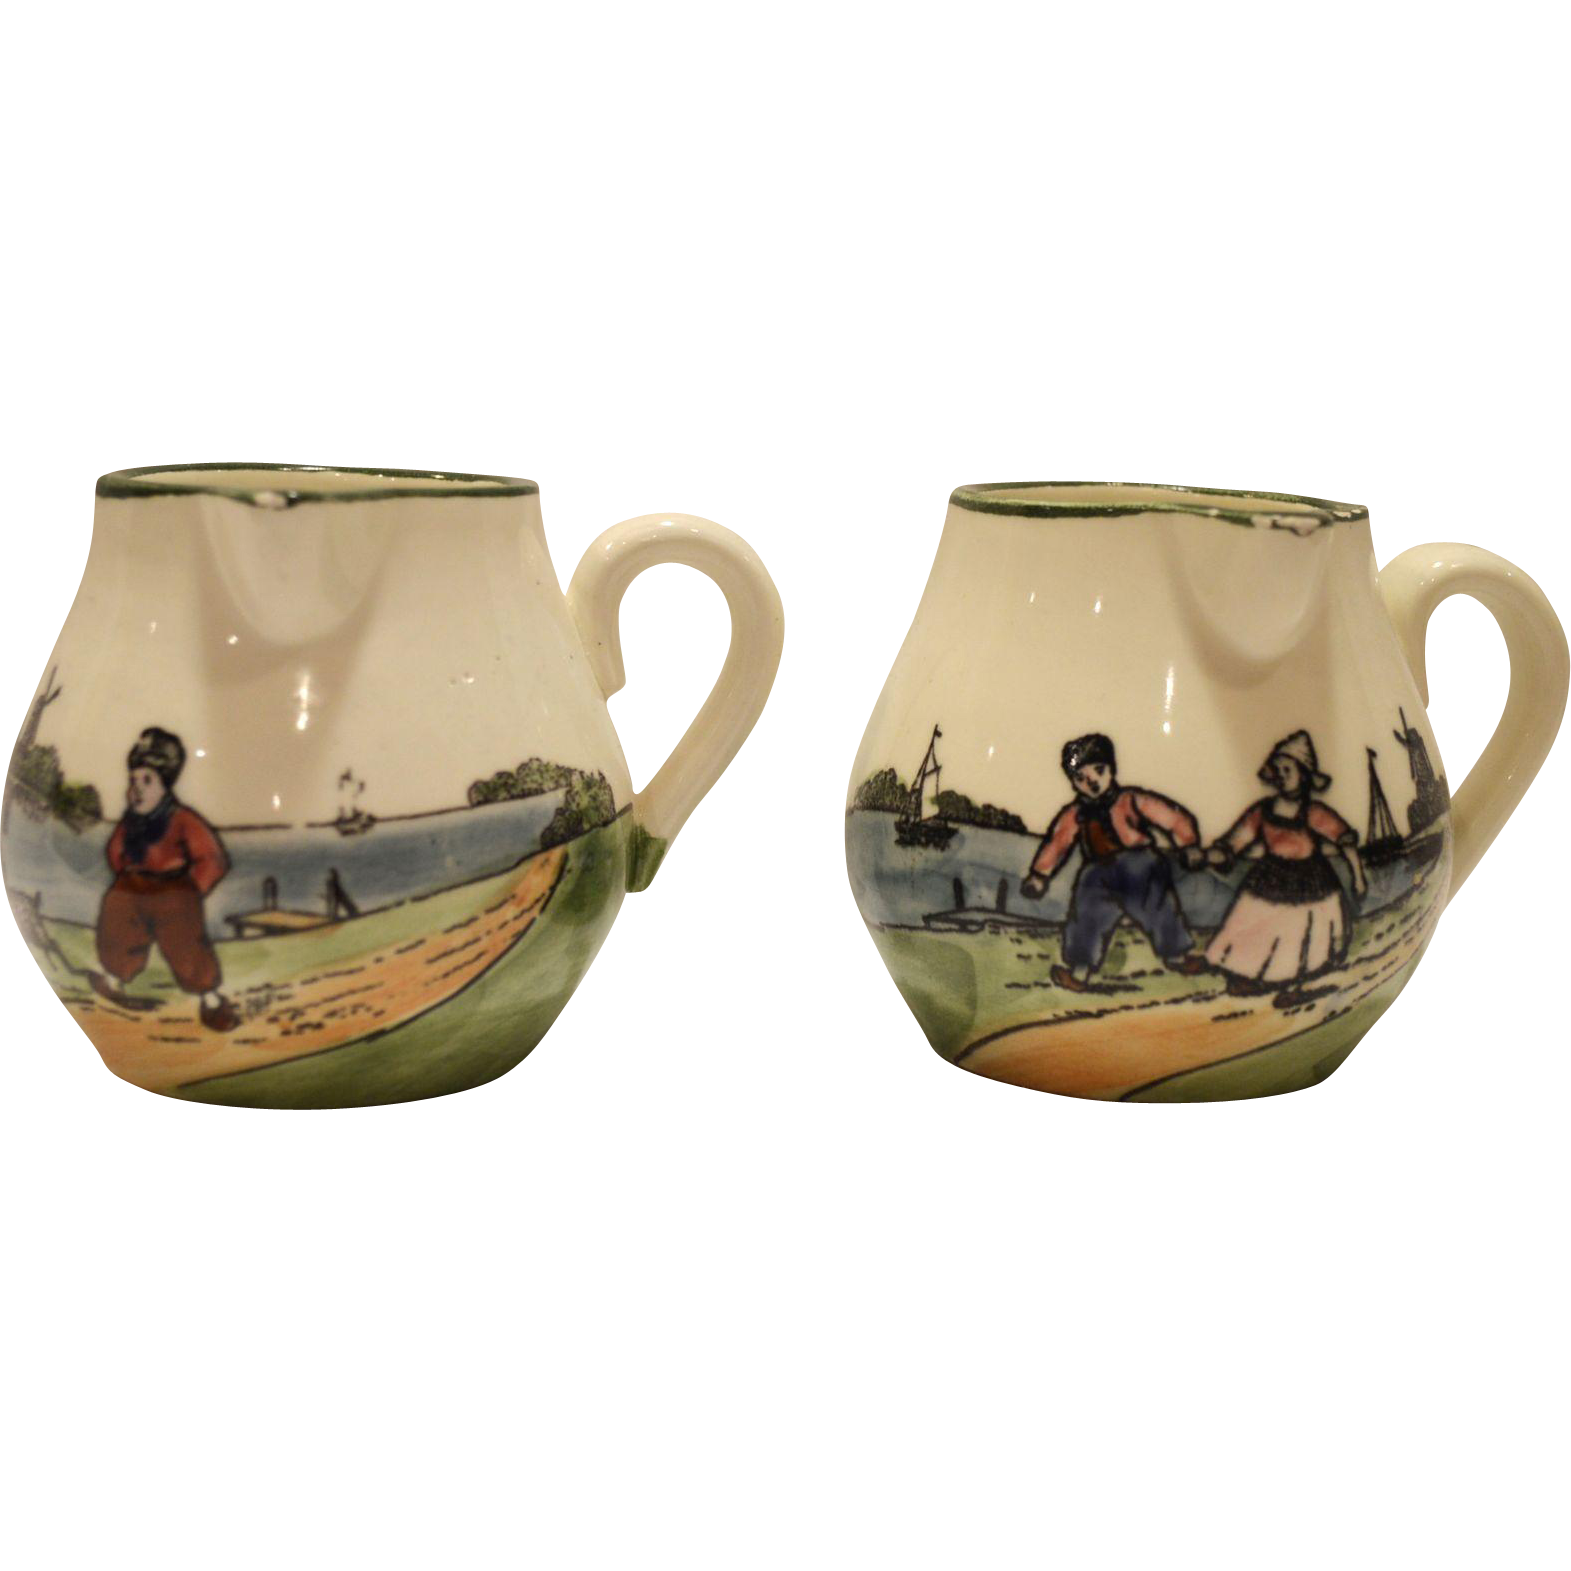 2 - Adorable German Earthenware Creamers with Side Spout and Hand Painted Dutch Children ~ ZELL UNITED CERAMIC FACTORIES - GEORG SCHMIDER (Germany) - ca 1907 – 1928